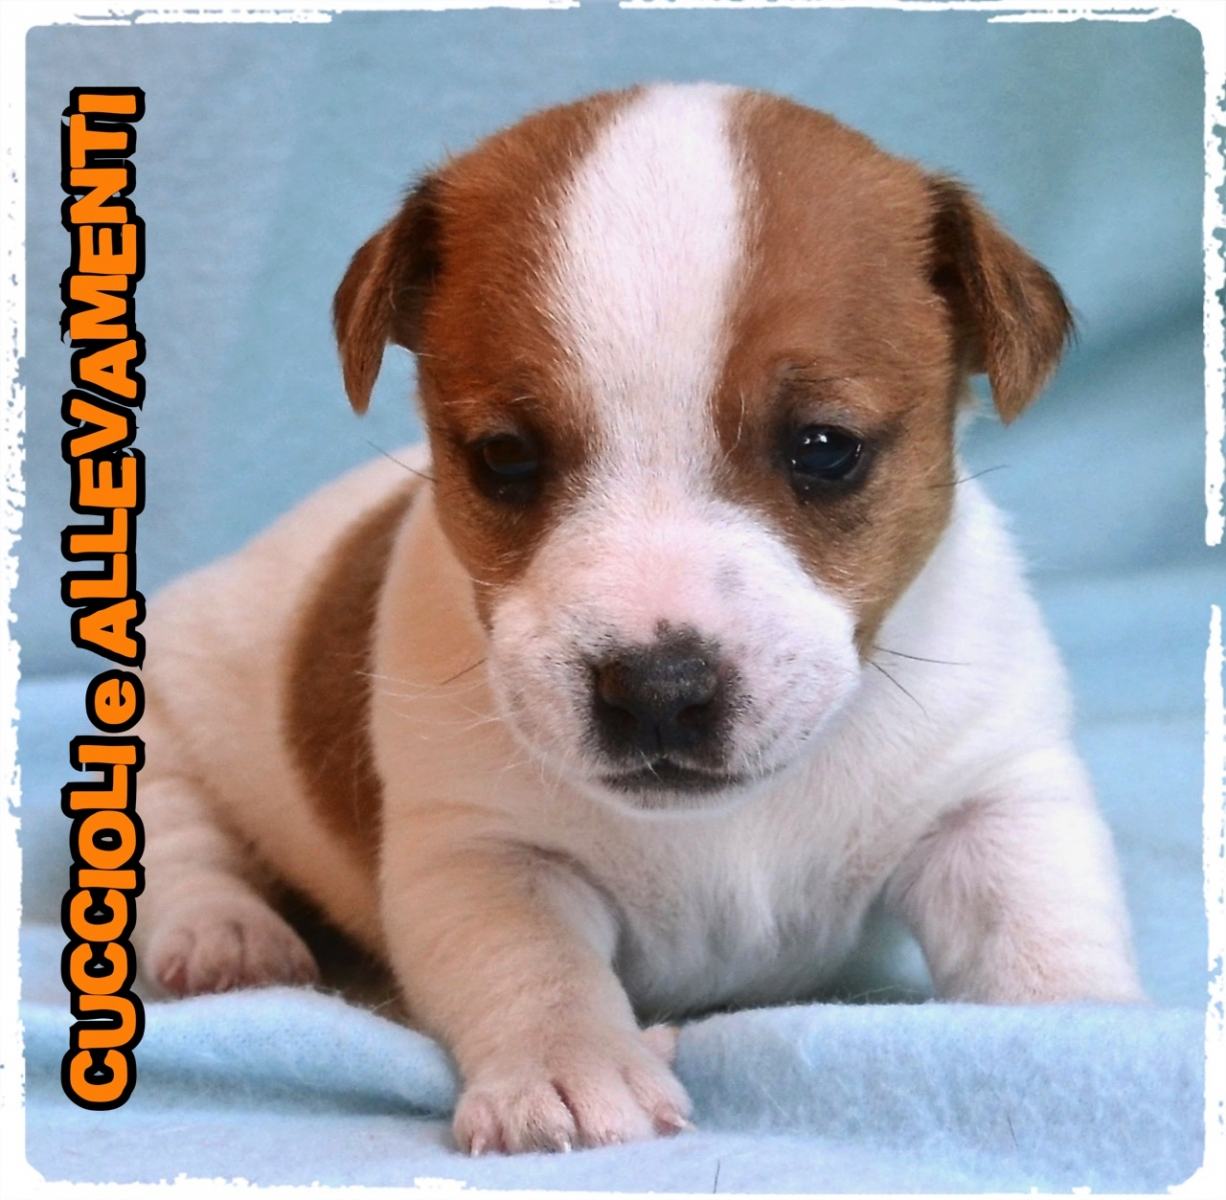 Jack Russell/Russel 4_wm